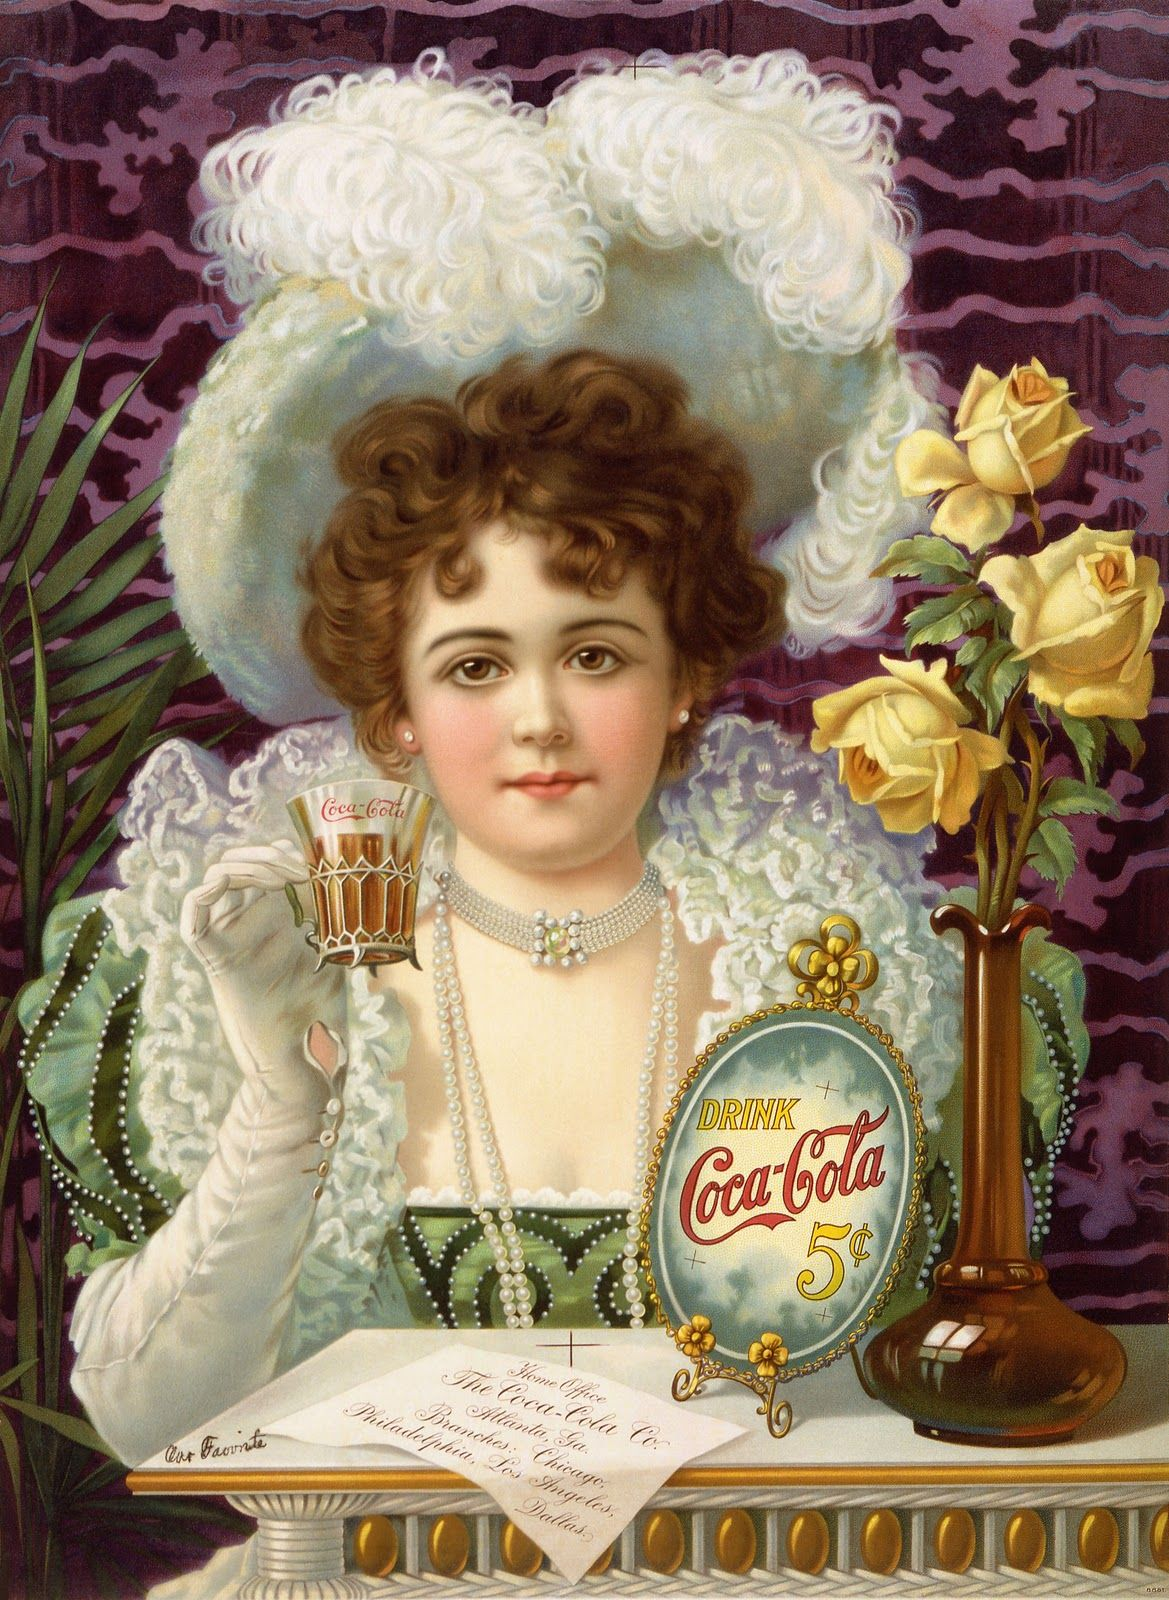 This is a quite famous advertisement from the 1890s starring the model Hilda Clark in formal 19th century attire.